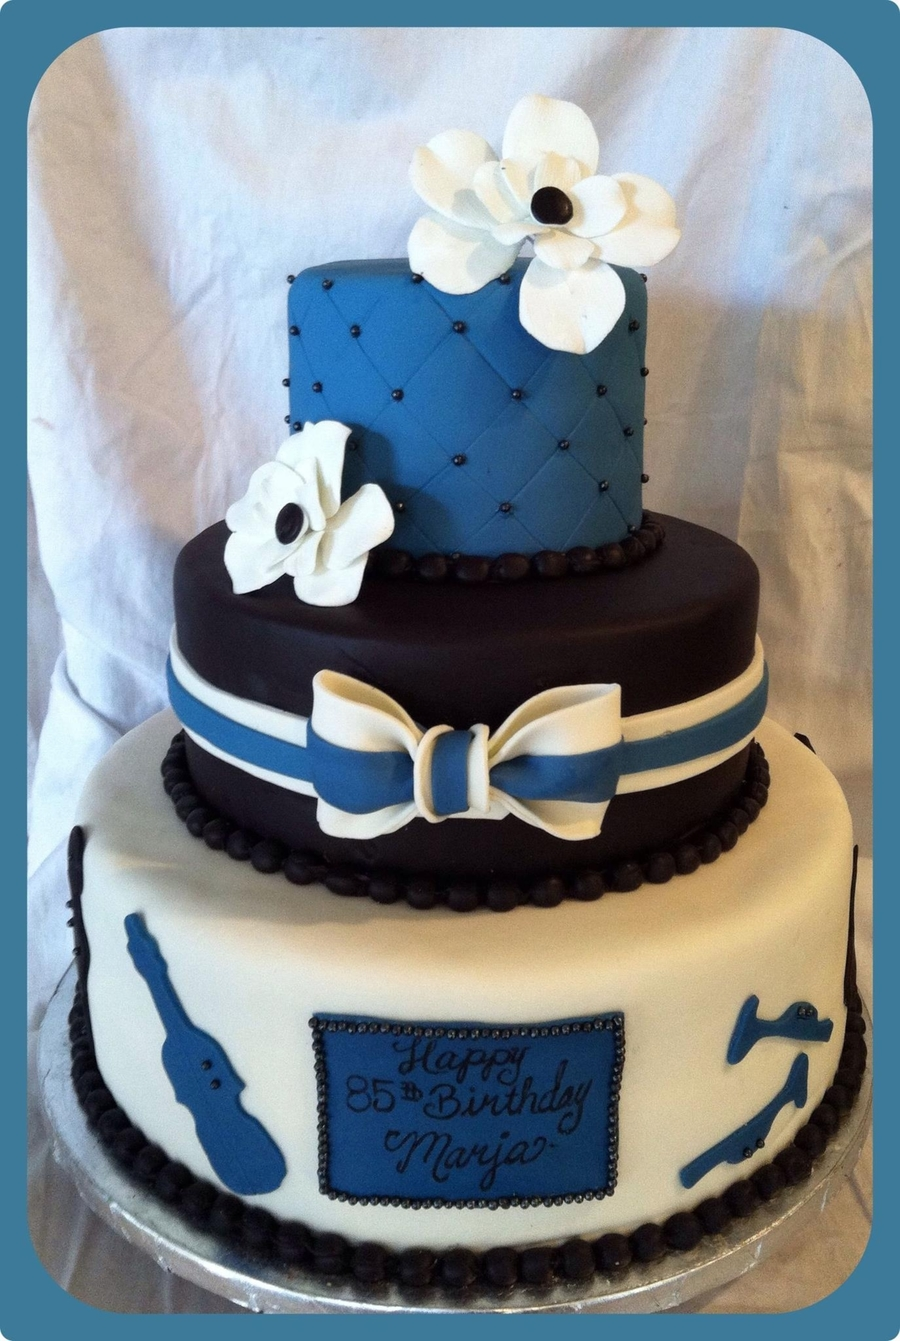 85Th Birthday Big Band Cake on Cake Central